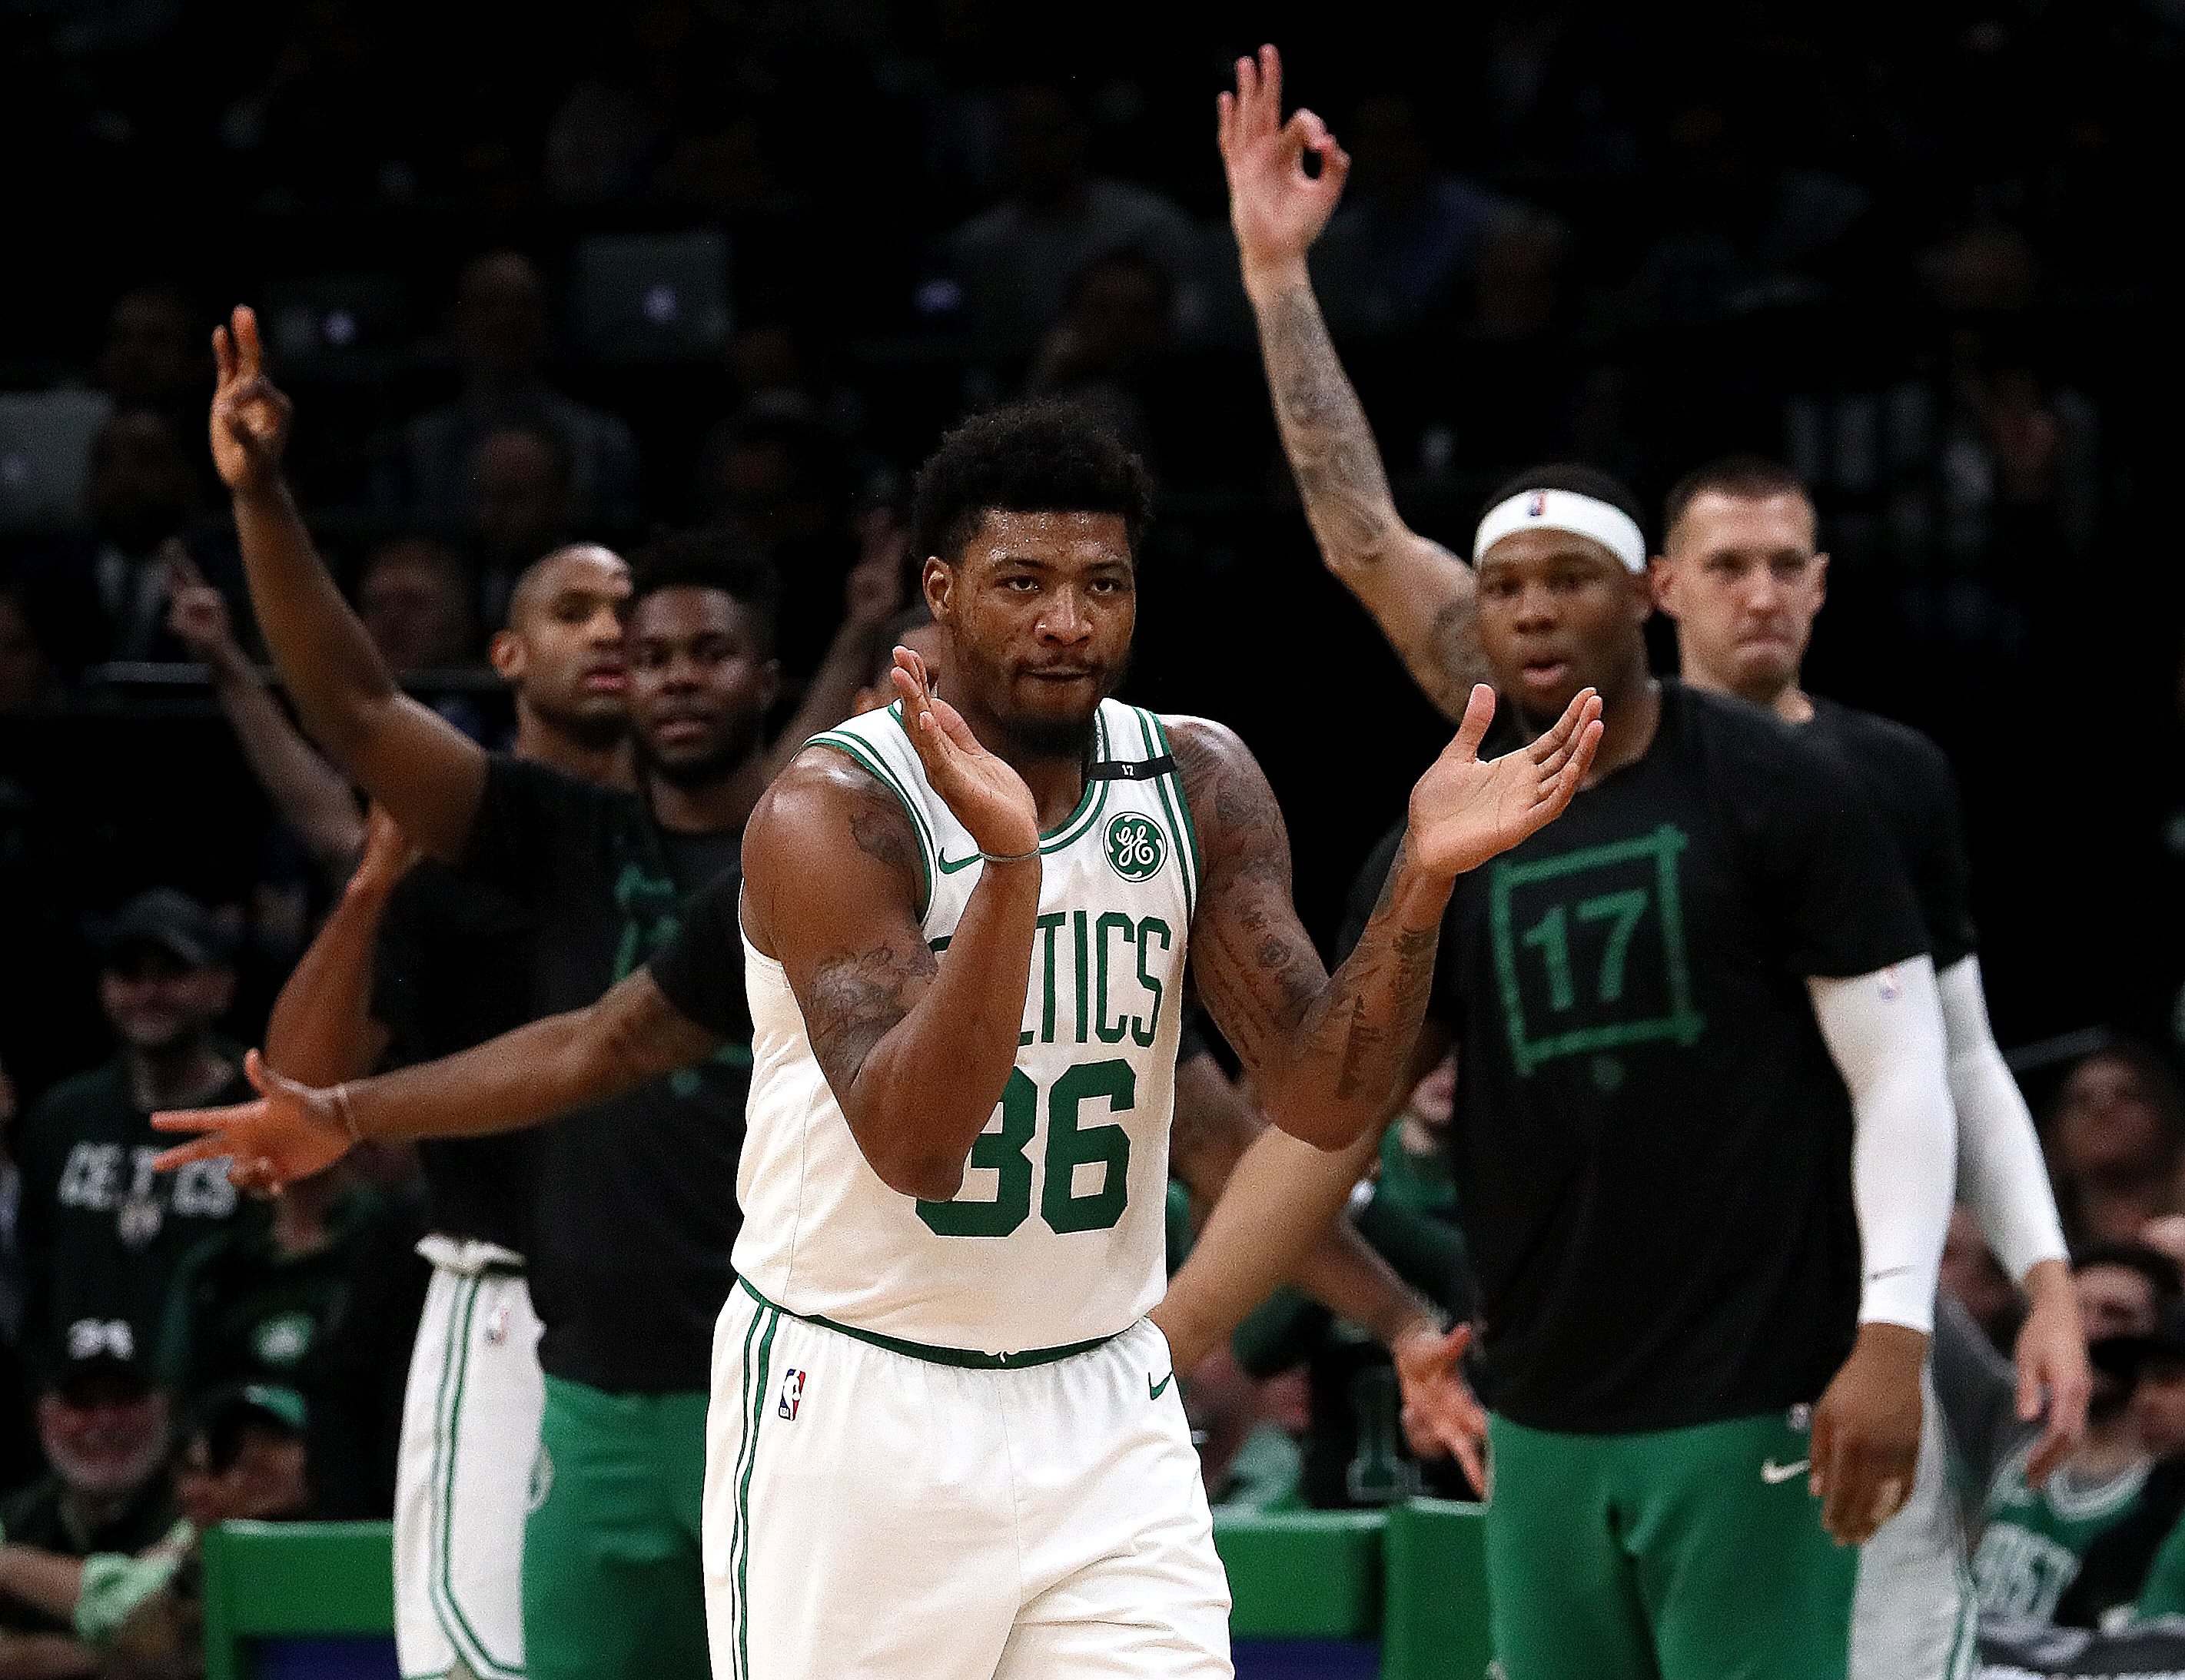 bostonglobe.com - Adam Himmelsbach - 'I'm blessed to still be here.' Amid change, Marcus Smart remains Celtics' constant